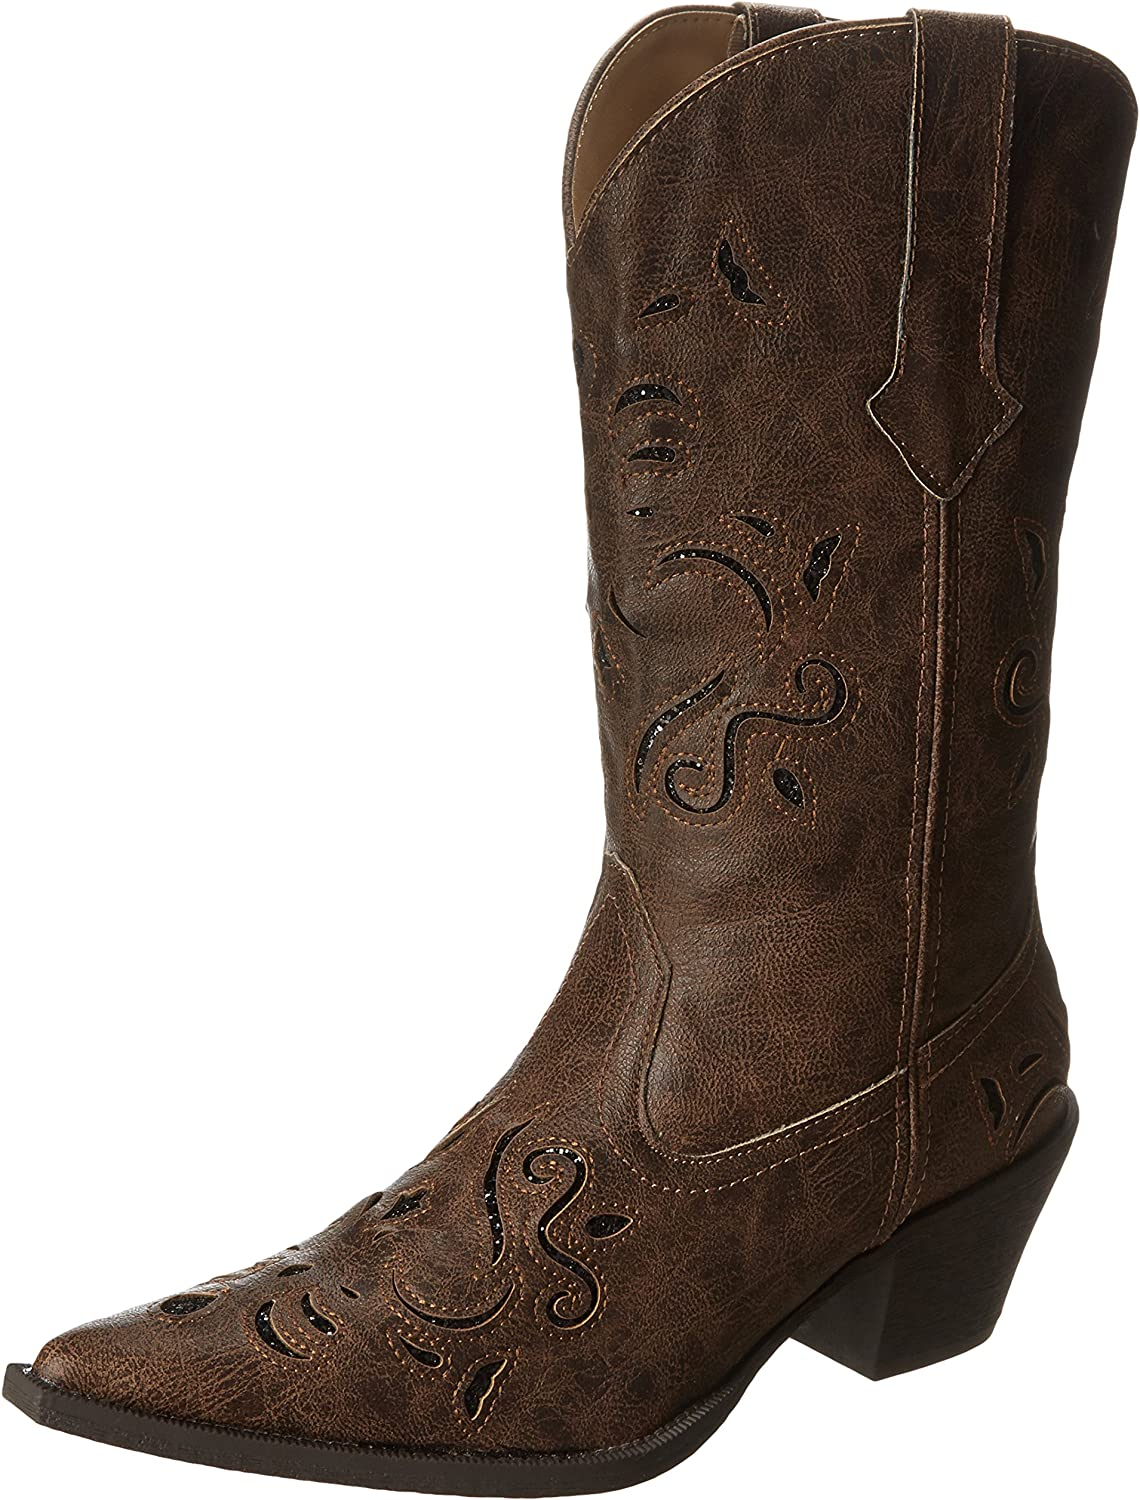 ROPER Women's Vintage Faux Leather S Inlay Max 75% OFF Boot Store Cowgirl Glittery